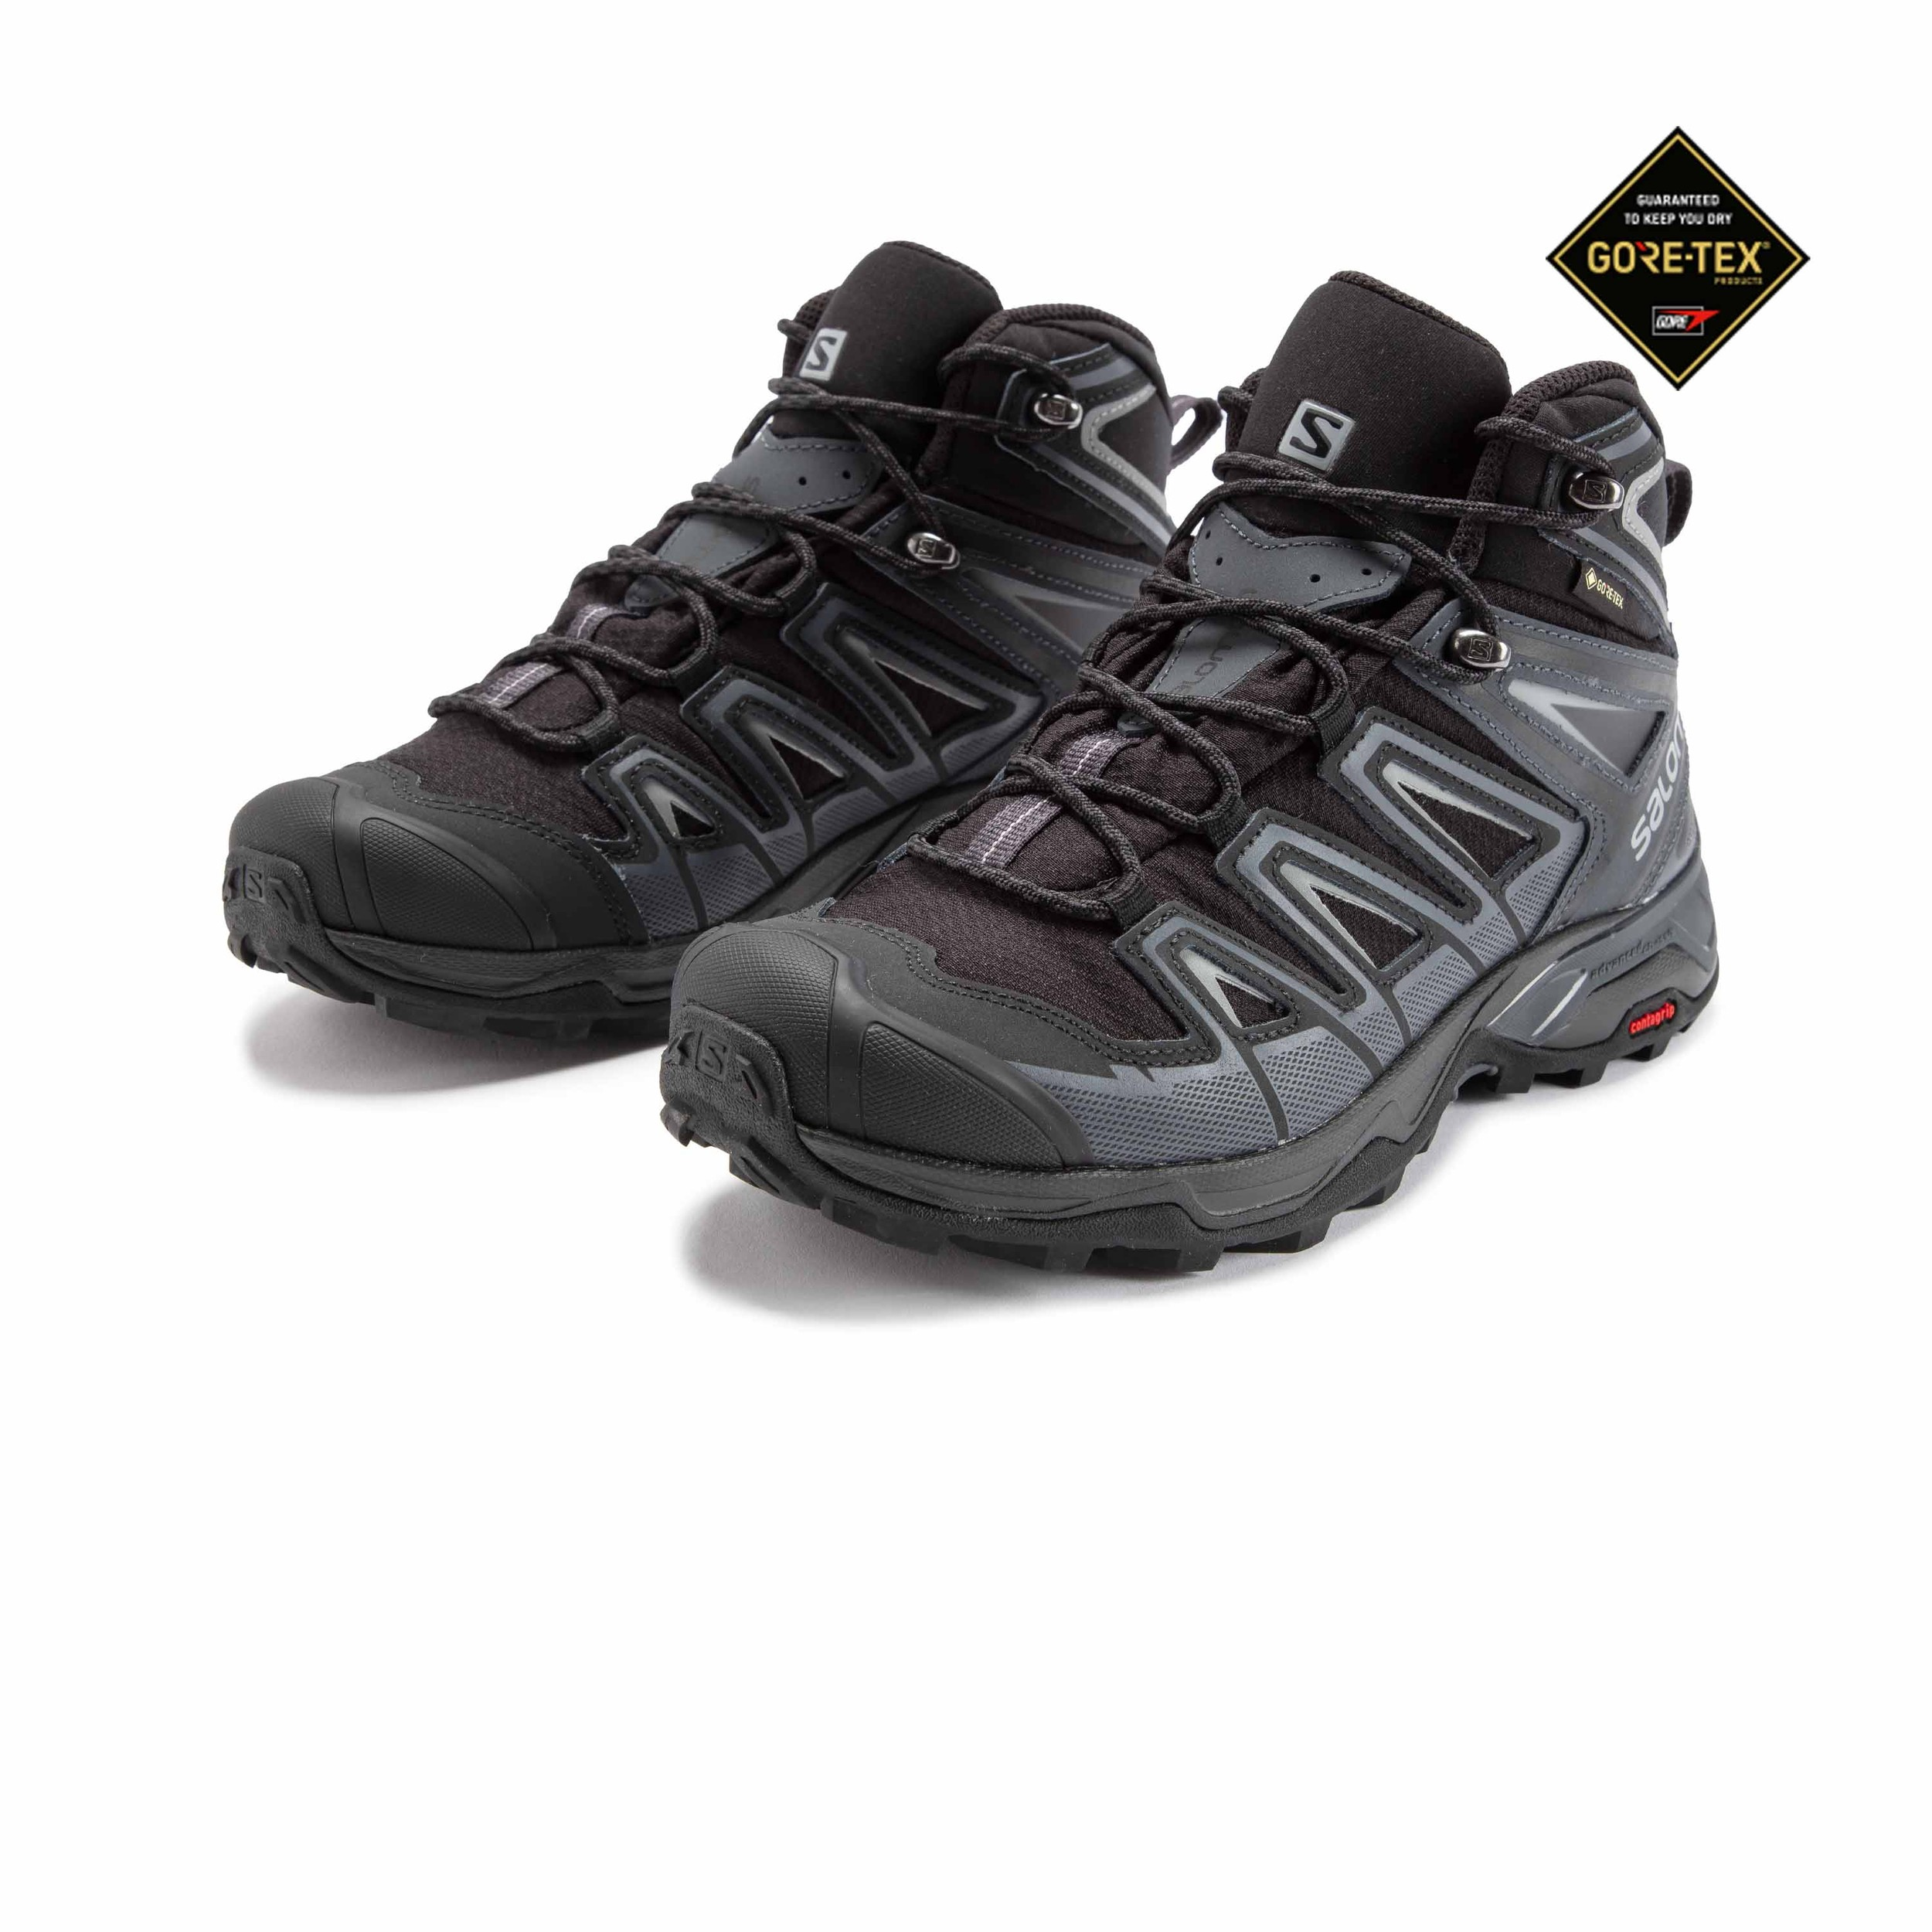 05ab64bfbdb Details about Salomon X Ultra Mid 3 Mens Black Gore Tex Walking Hiking  Shoes Boots